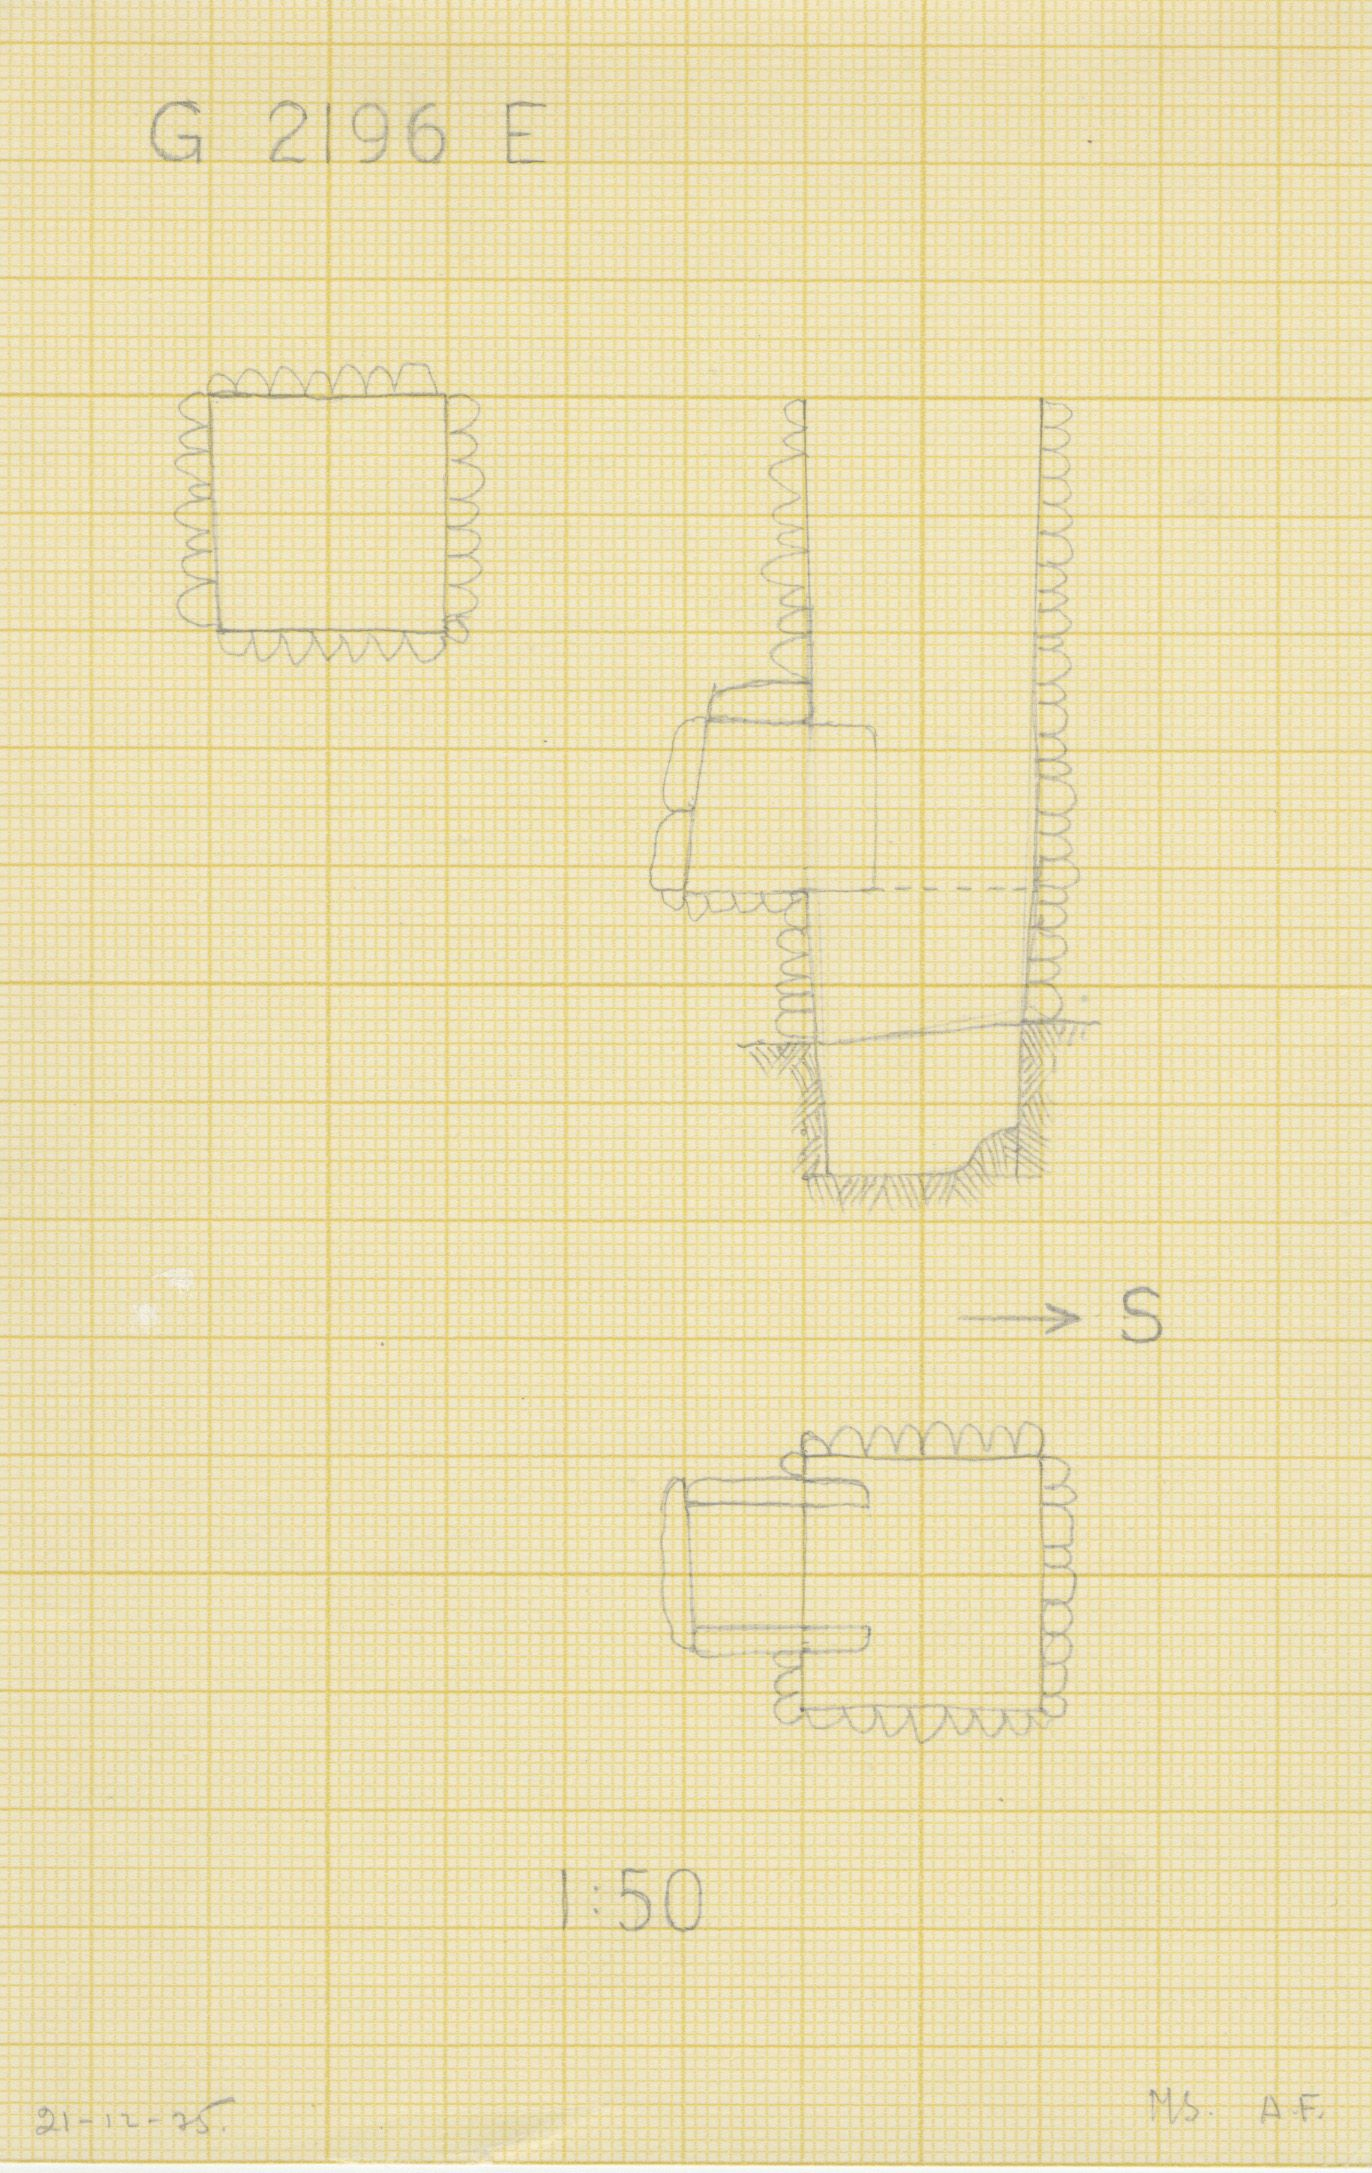 Maps and plans: G 2196, Shaft E